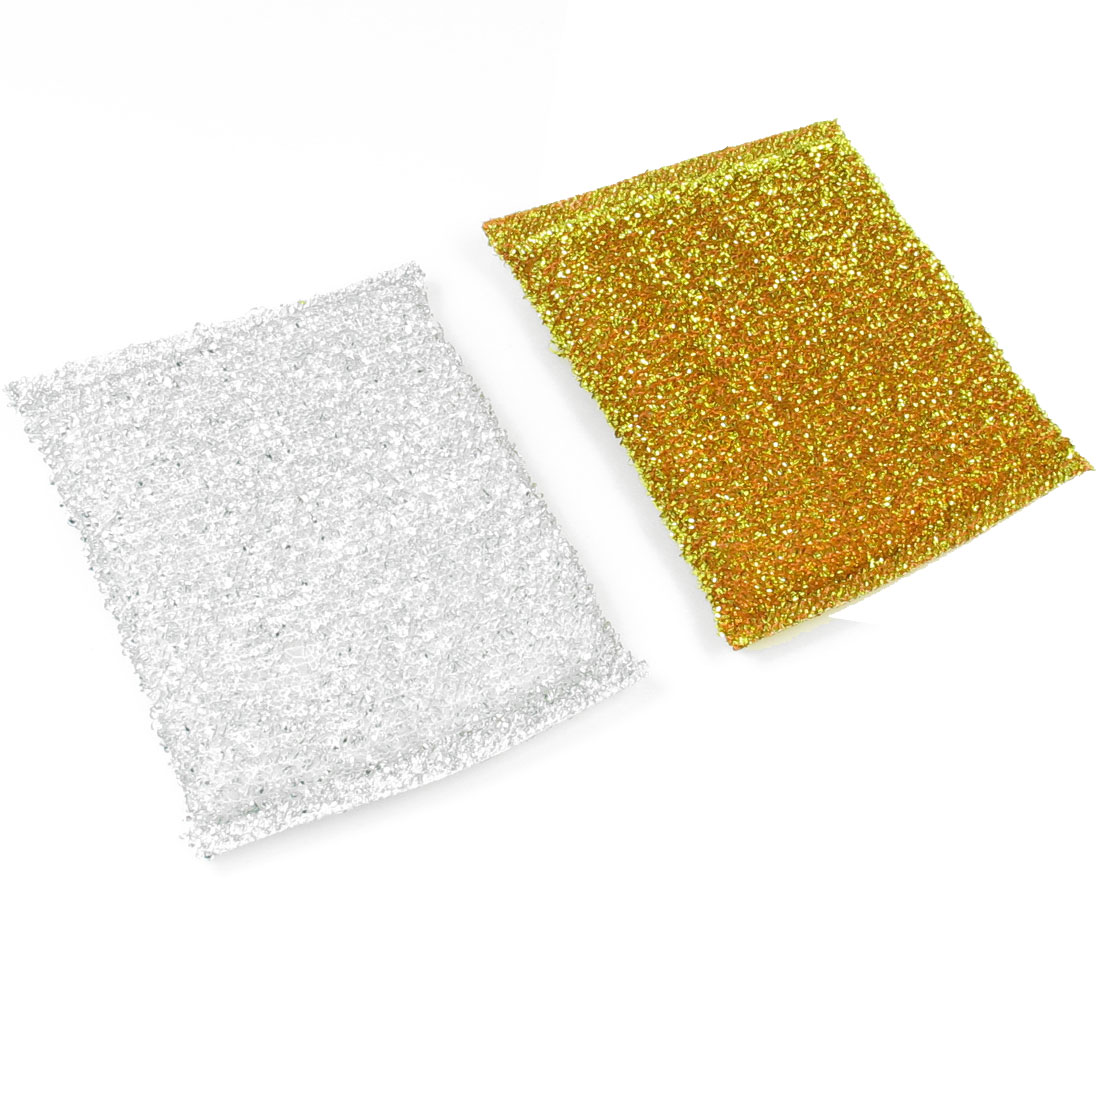 2 Pcs Metallic Thread Wraped Sponge Silver Gold Tone Dish Pad Cleaner